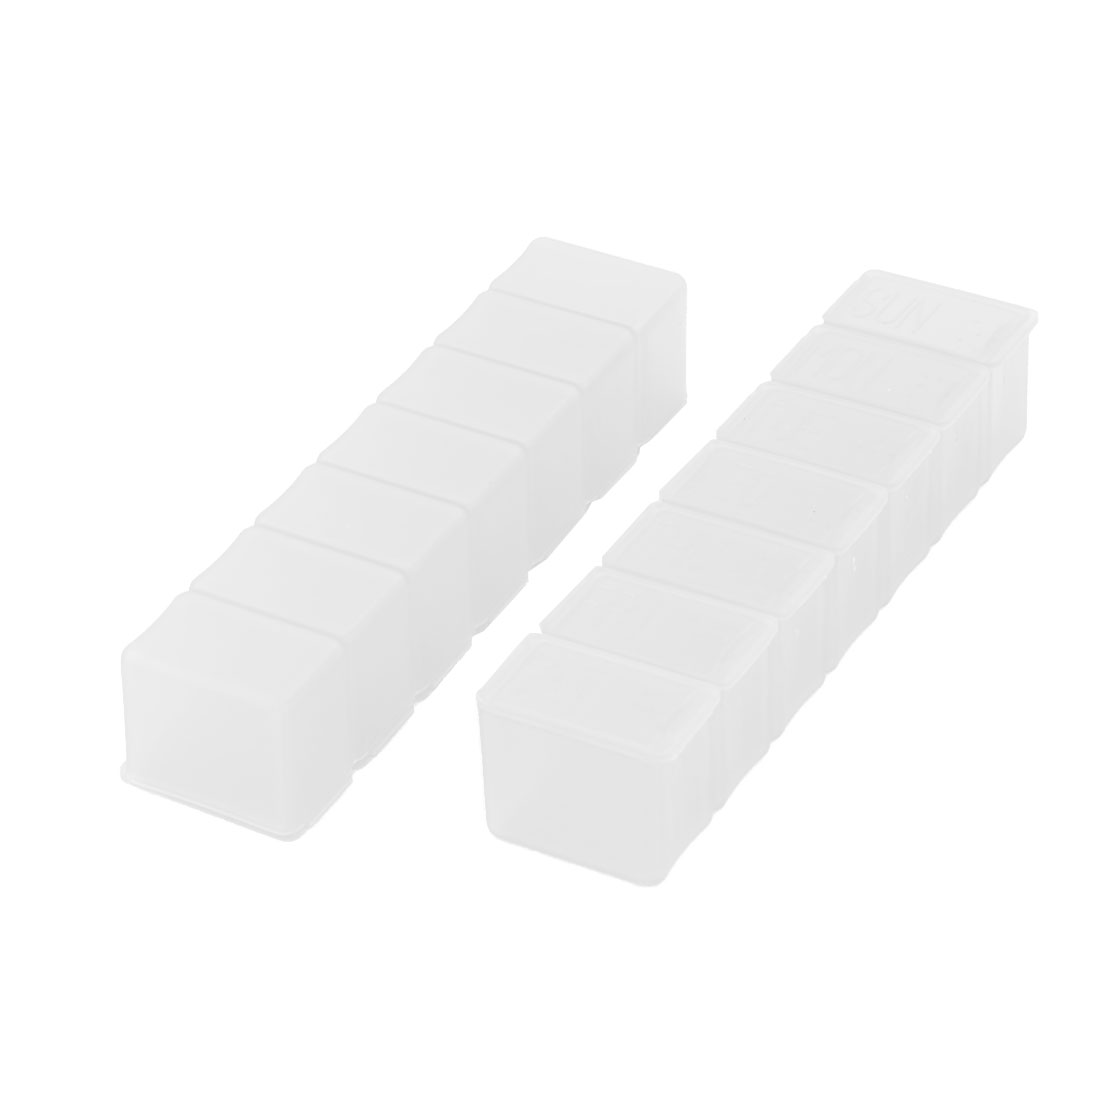 Home Rectangle 7 Slots Pill Storage Container Case Box Clear 2 Pcs